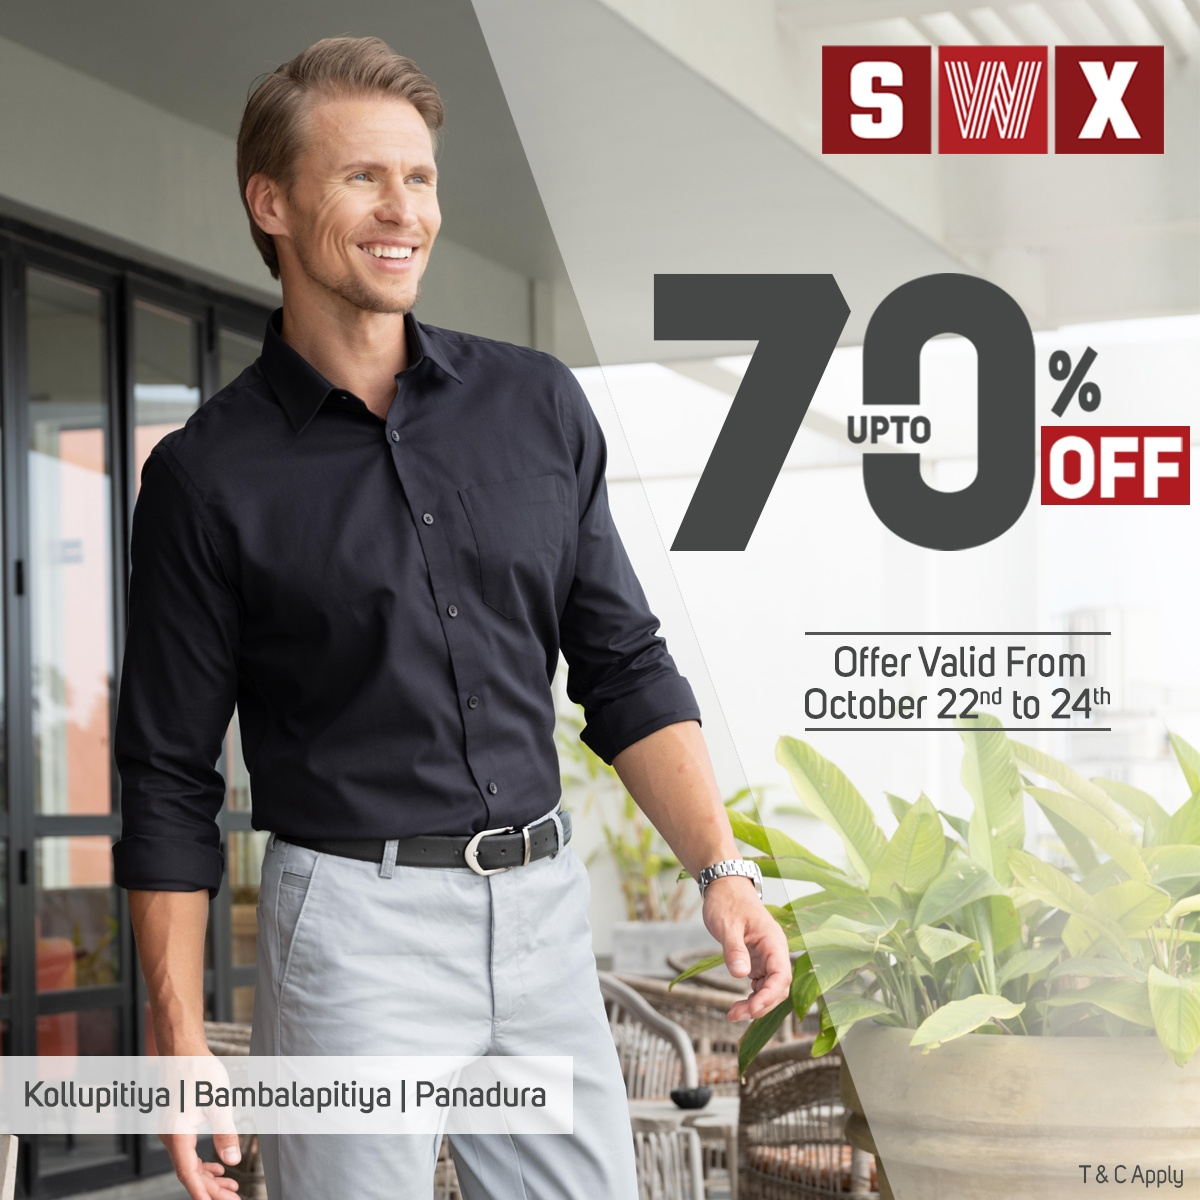 FLASH SALE! Up to 70% Off at SWX